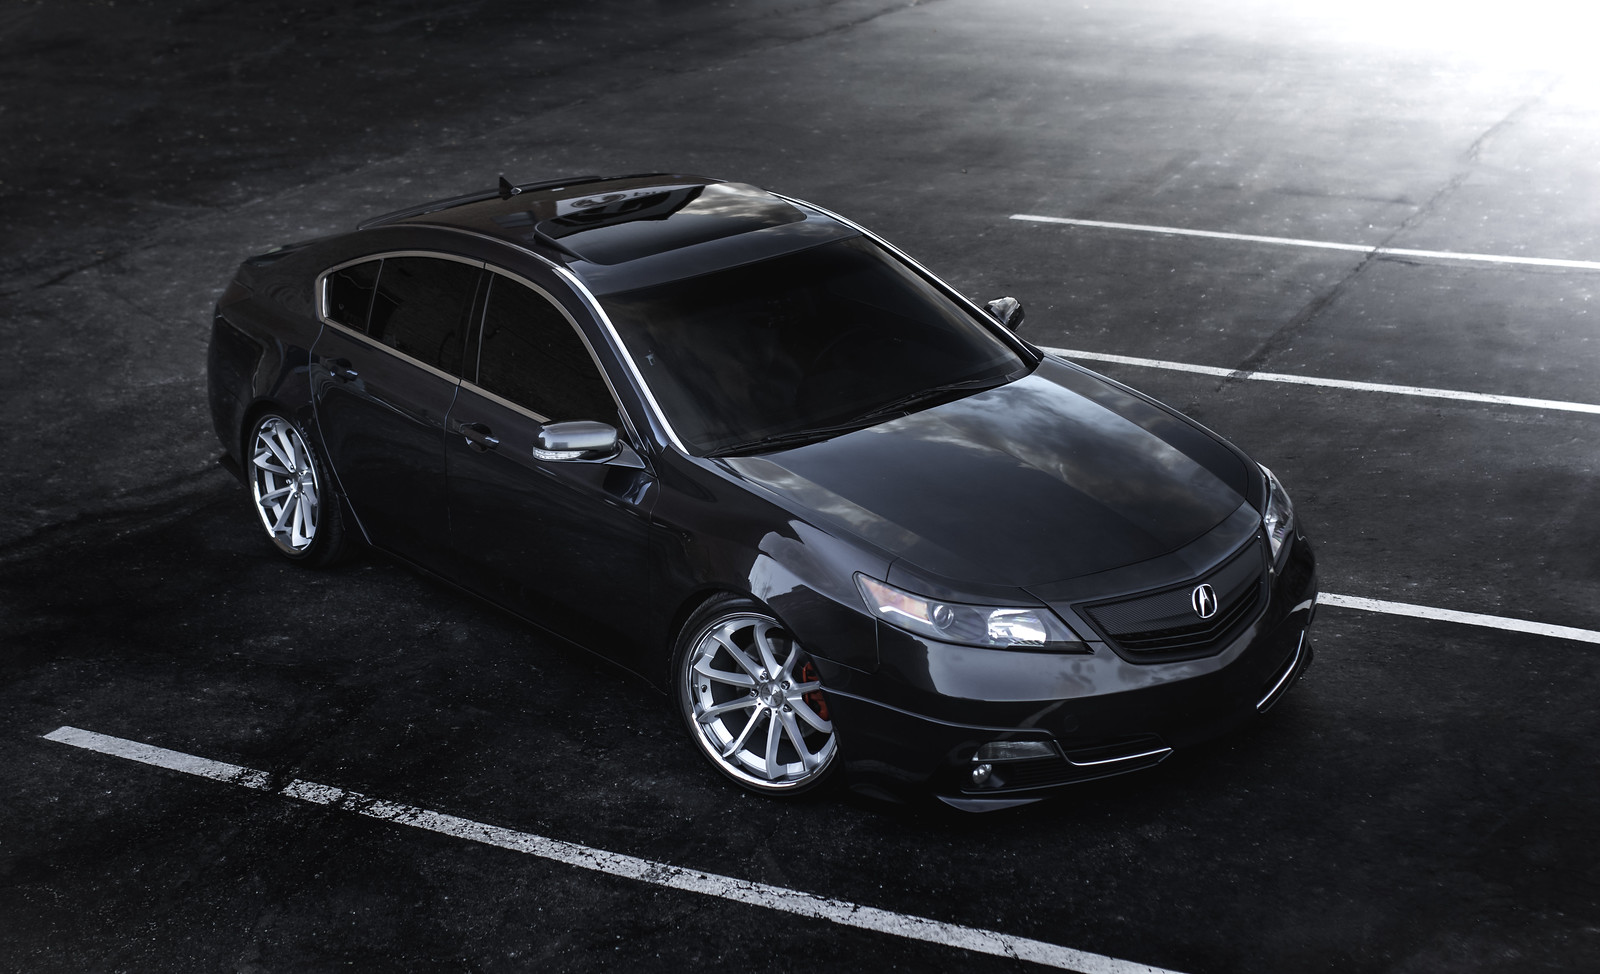 2012_Acura_TL_BD23_Silver_Machined_Chrome_SS_Lip_13